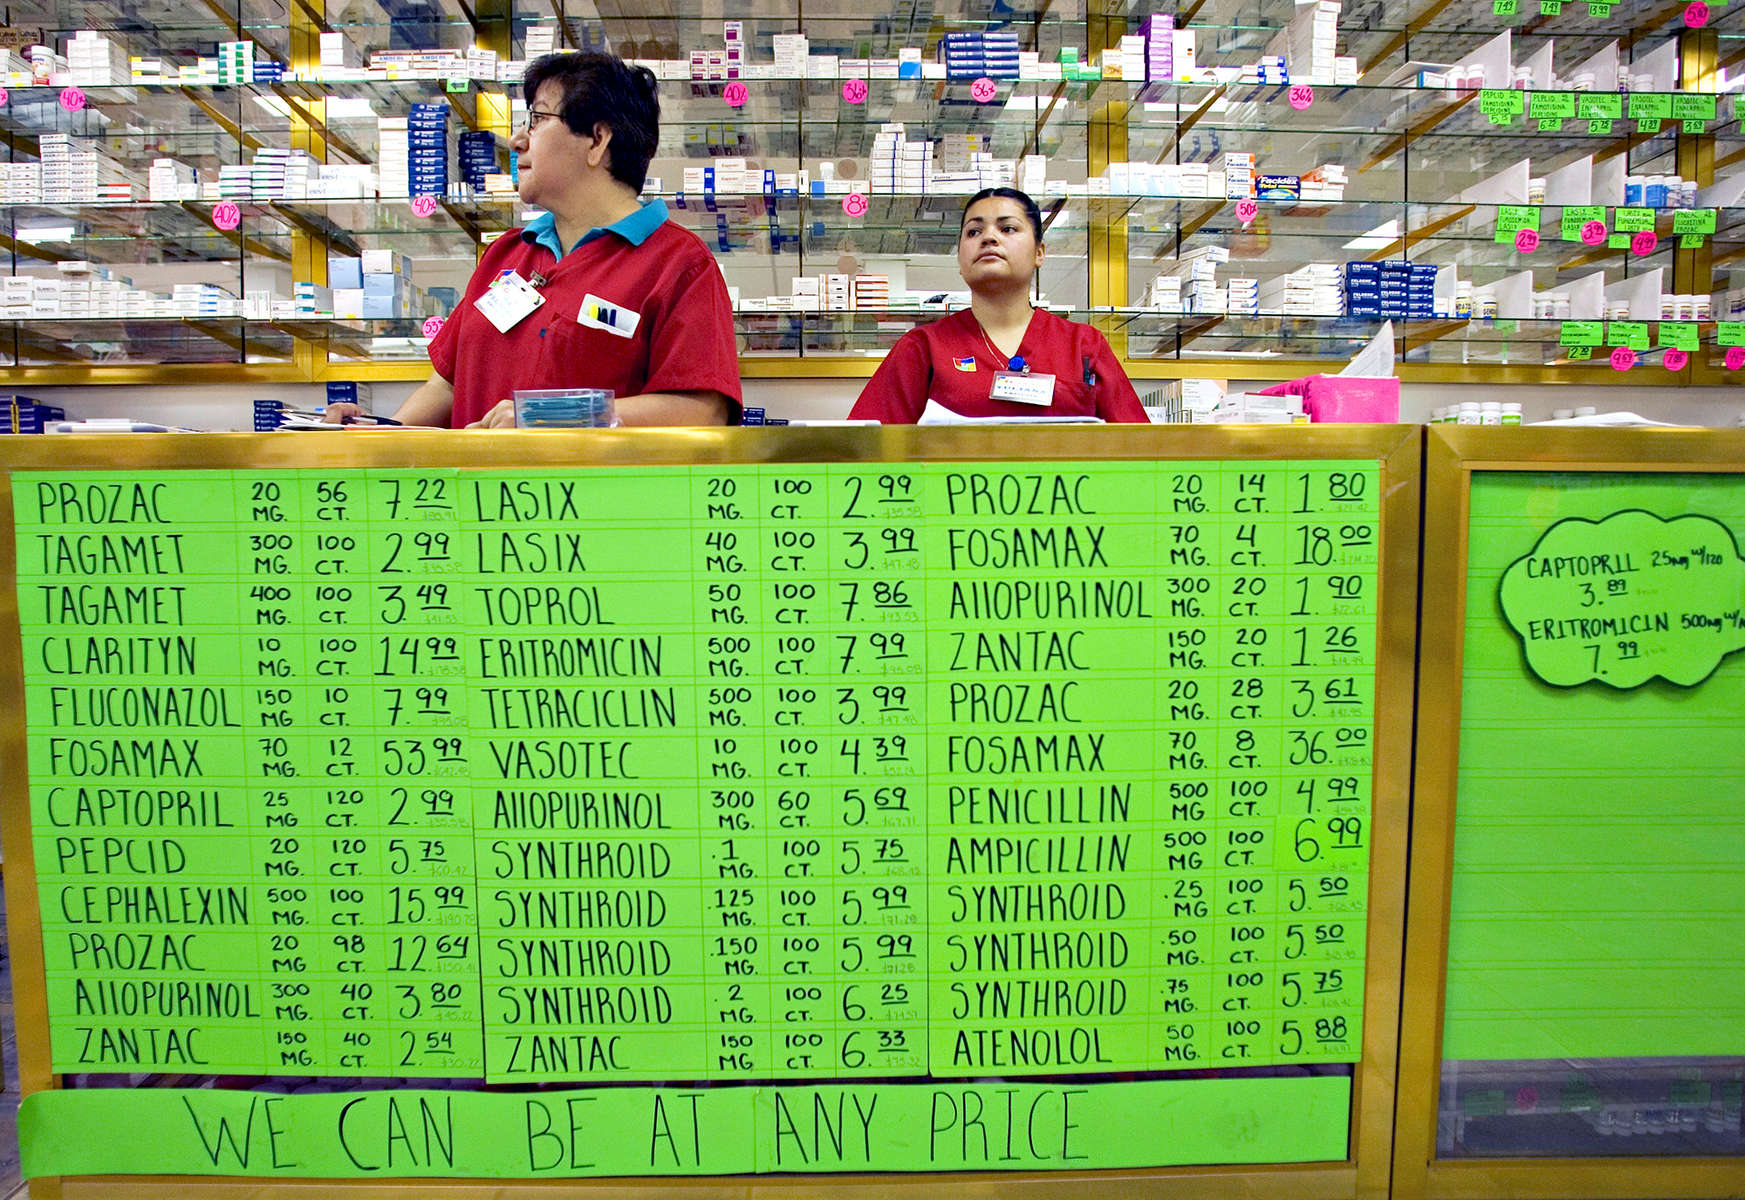 ALGODONES, MEXICO-March 22: Saleswomen wait for customers at one of several branches of Guadalahara Pharmacy March 22, 2005 in Algodones. There are more than a dozen pharmacies in town selling both name brand and generic medications to American customers. (Photo by Radhika Chalasani/Getty Images)